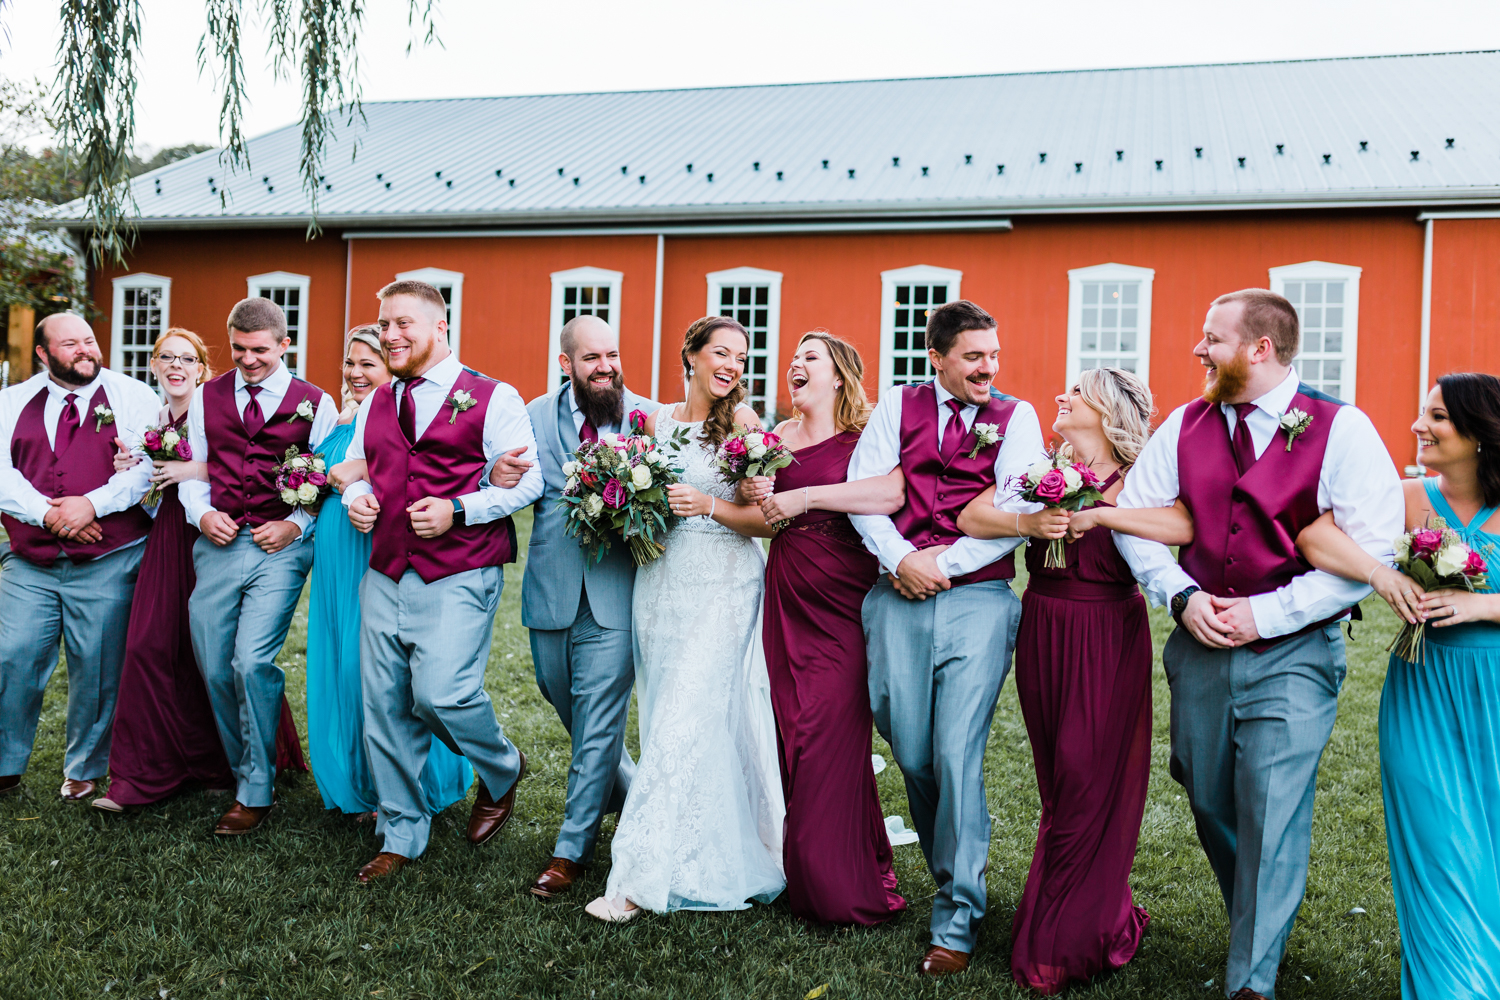 Bride and Groom walking and laughing with their bridal party - Pond View Farm in White Hall, MD